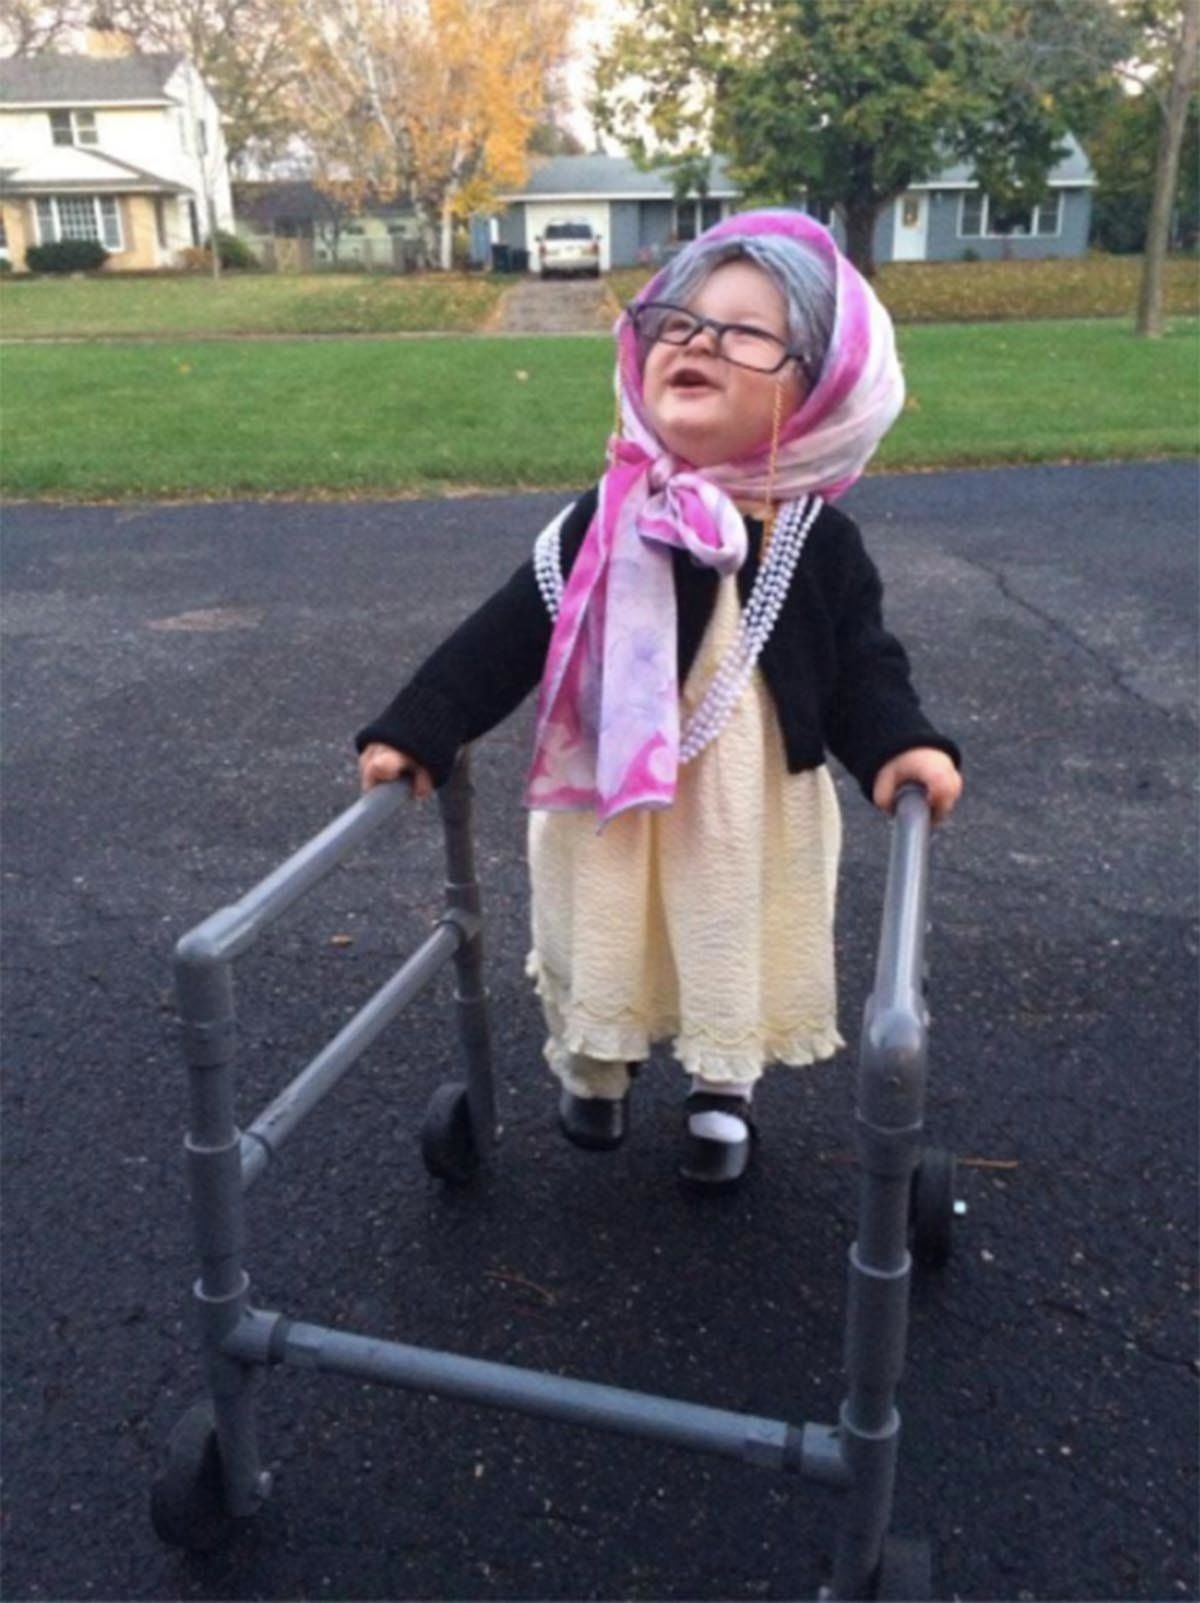 Image of: Imgur Just 20 Photos Of Kids Dressed As Old People cause Its Ridiculously Cute Huffpost Just 20 Photos Of Kids Dressed As Old People cause Its